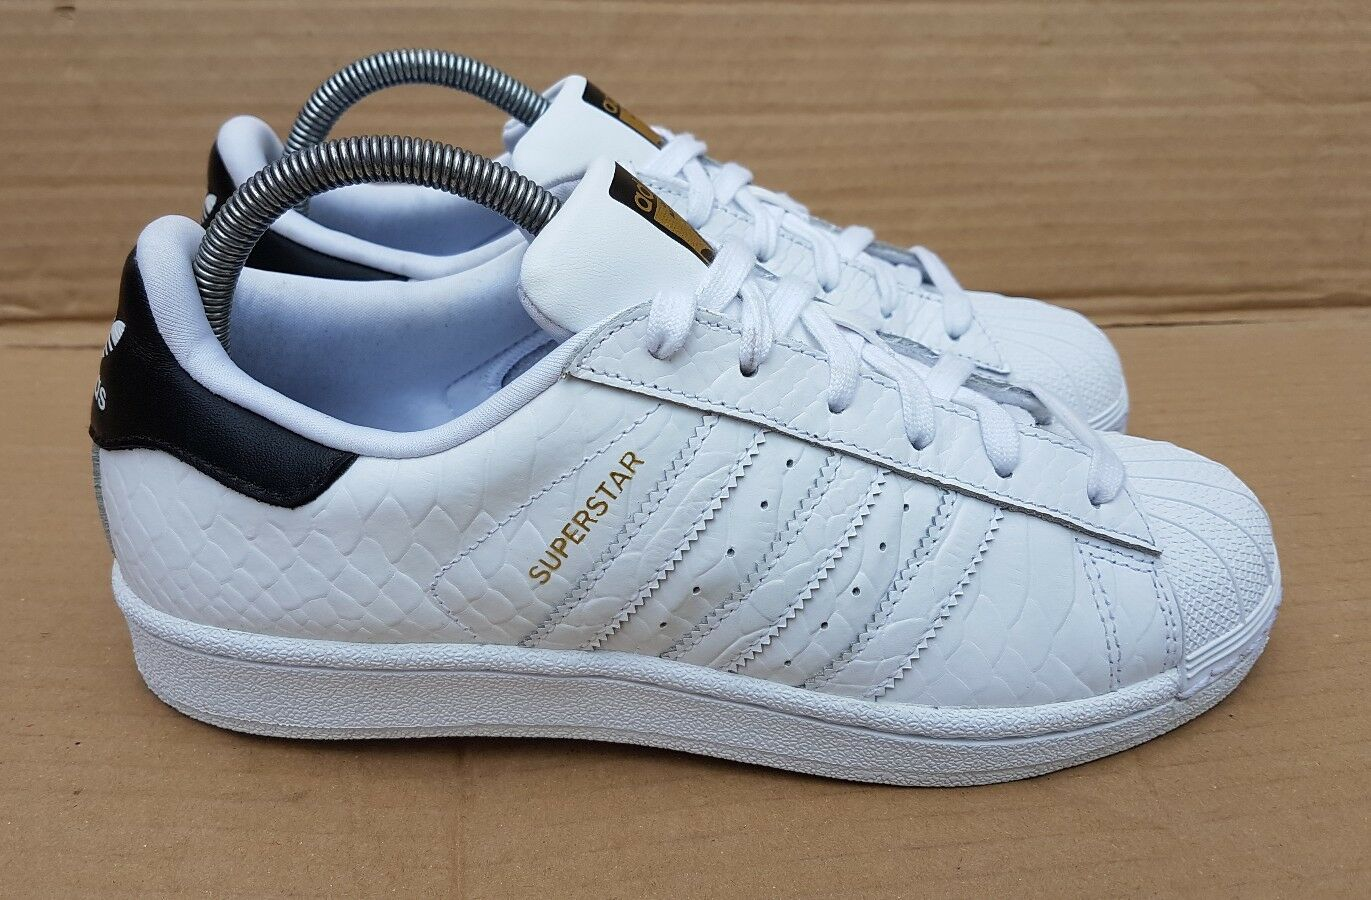 GORGEOUS ADIDAS SUPERSTAR Weiß AND AND AND BLACK TRAINERS IN SIZE 5 UK RARE DESIGN c3acdc